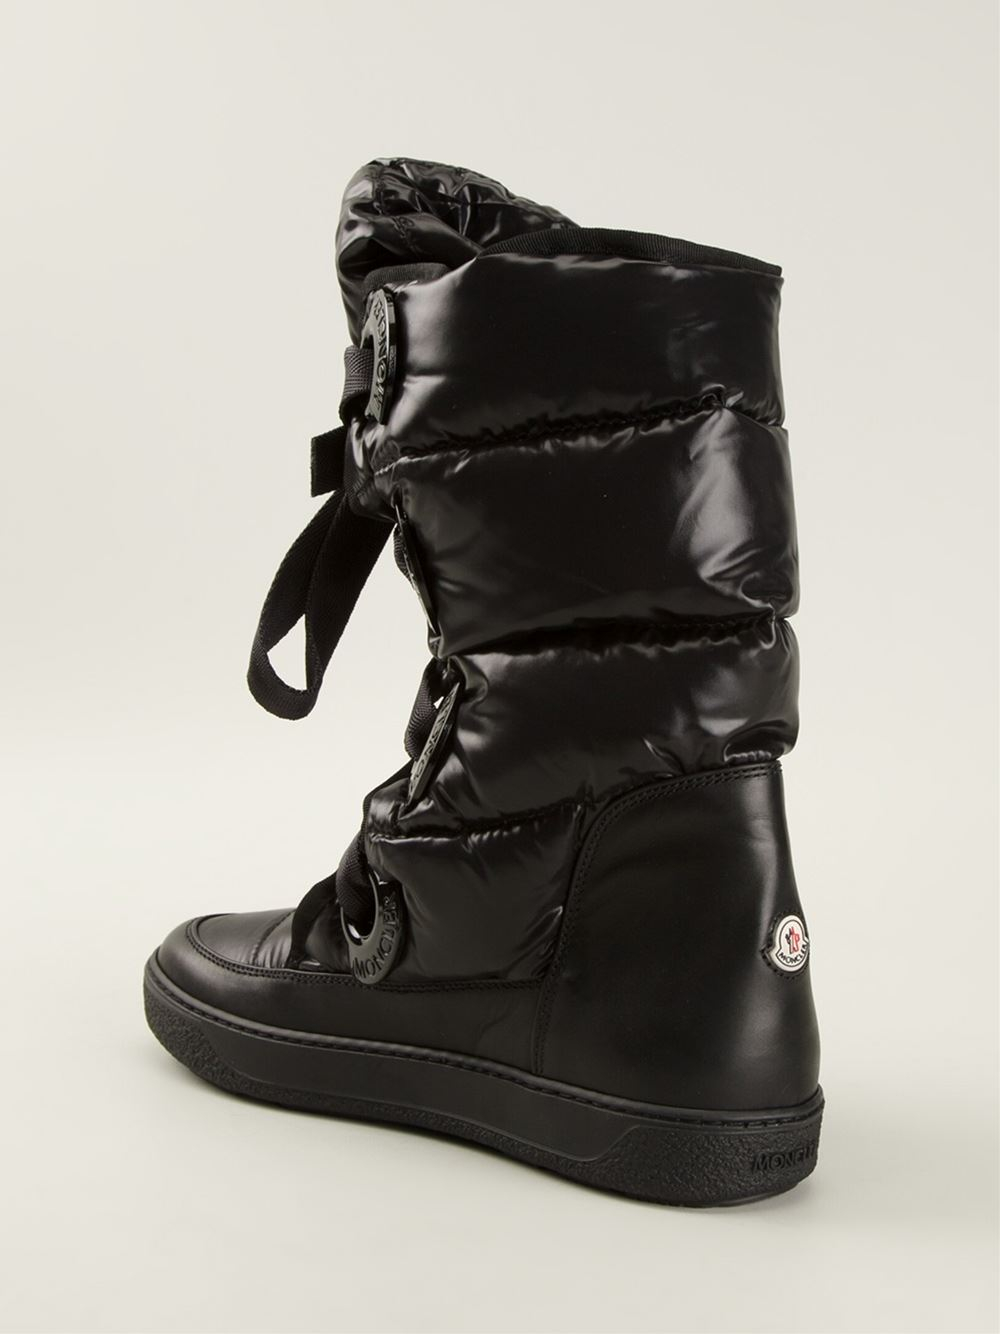 Moncler Shoes High